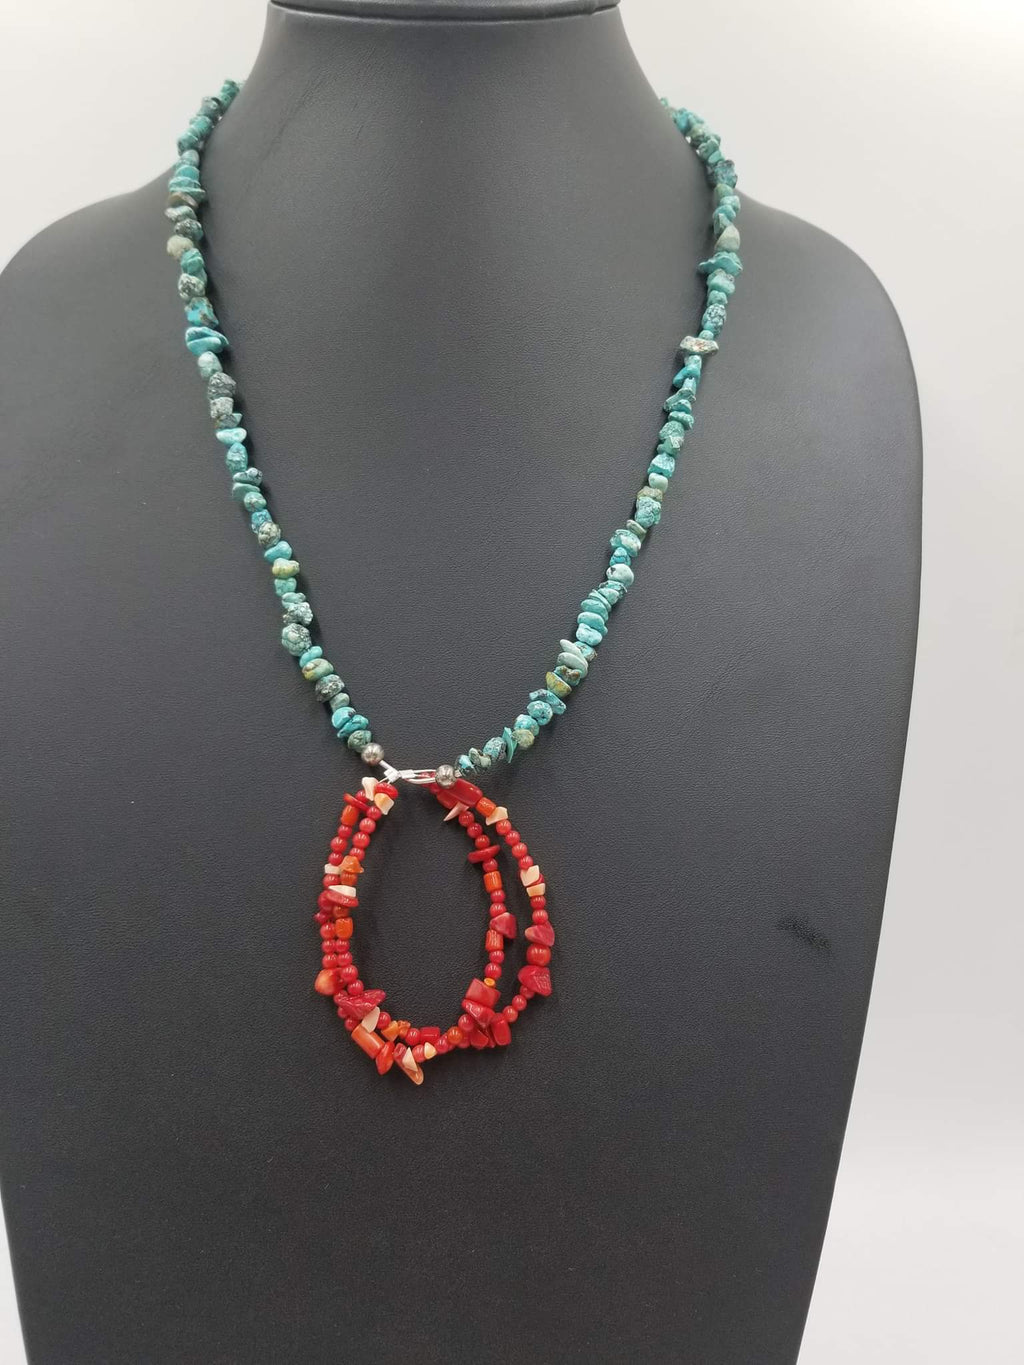 "Adjustable sterling, turquoise, howlite, Navajo style necklace, coral pendant. 23-26"" Matinee length."